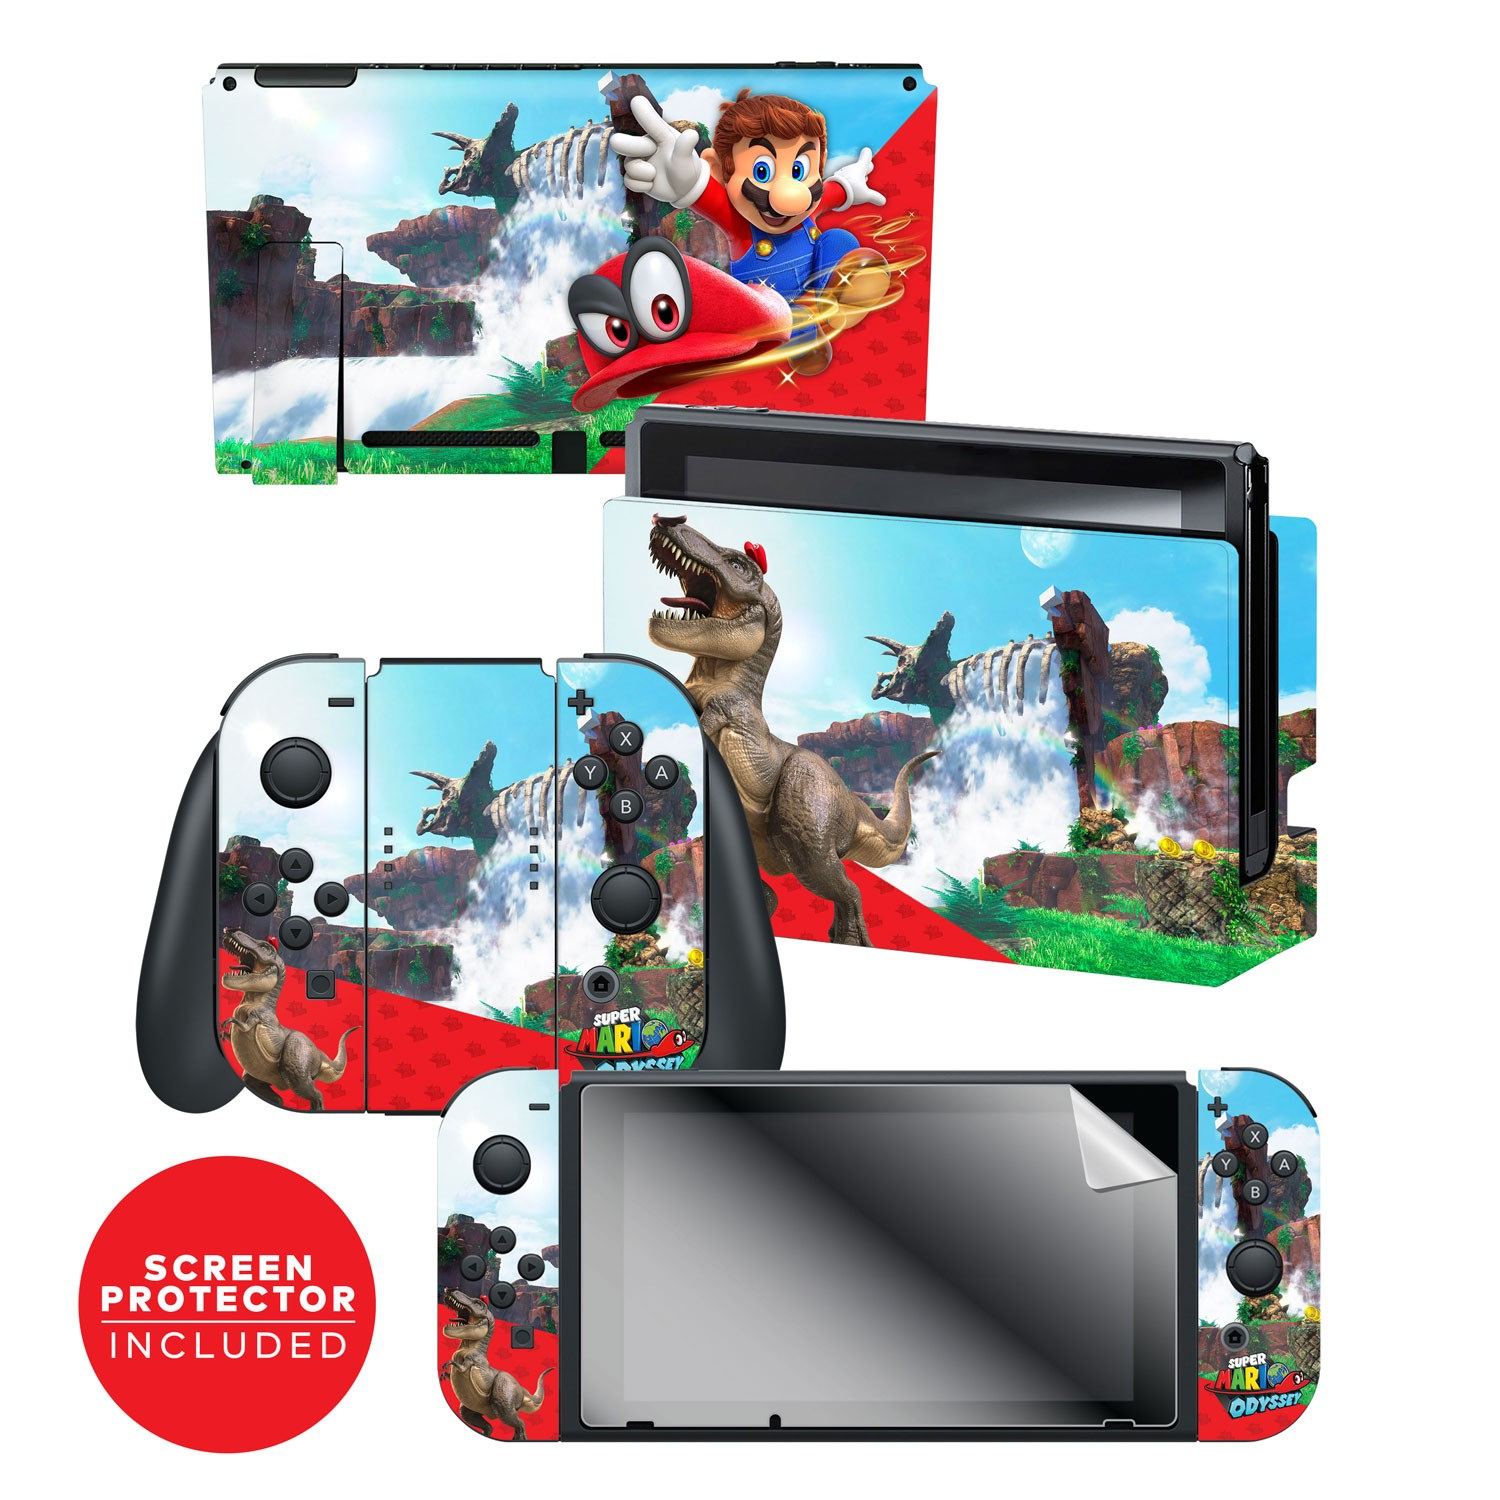 Super Mario™ Cascade Kingdom Nintendo Switch™ Console skin + Dock Skin + Joy-Con™ skin +  Joy-Con™ Grip Skin + Screen Protector Bundle Assortment